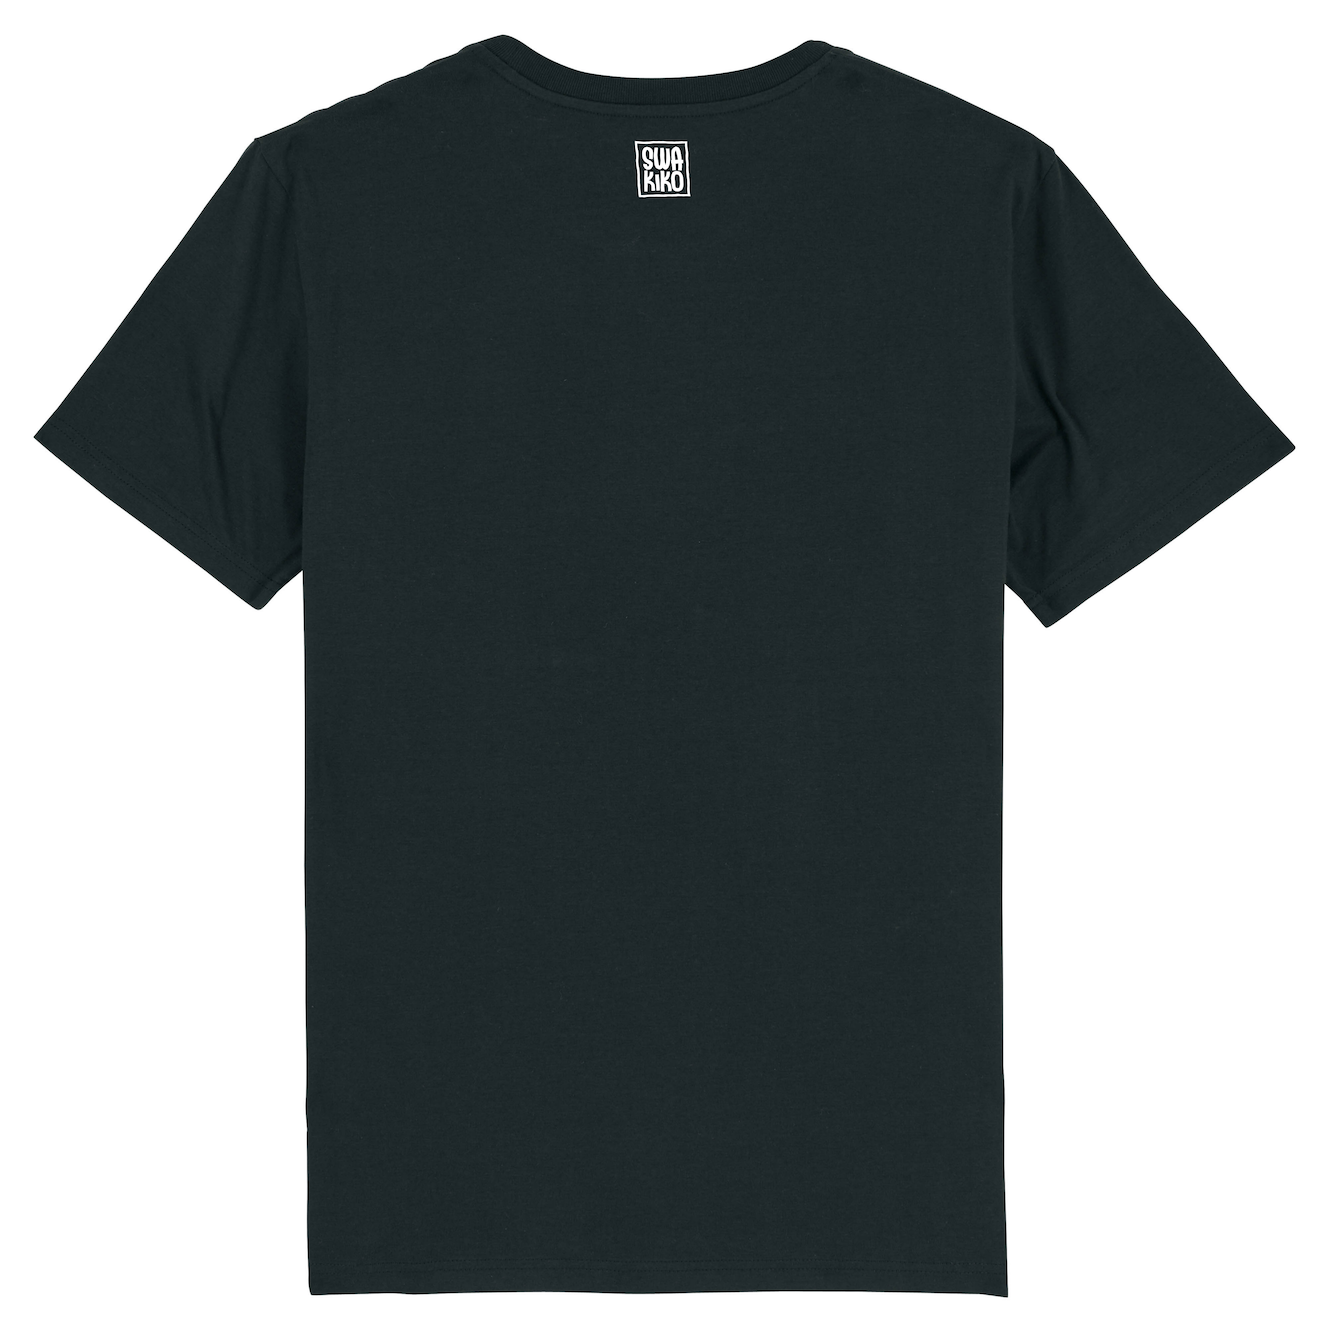 SWAKiKO Surf T-shirt black, logo